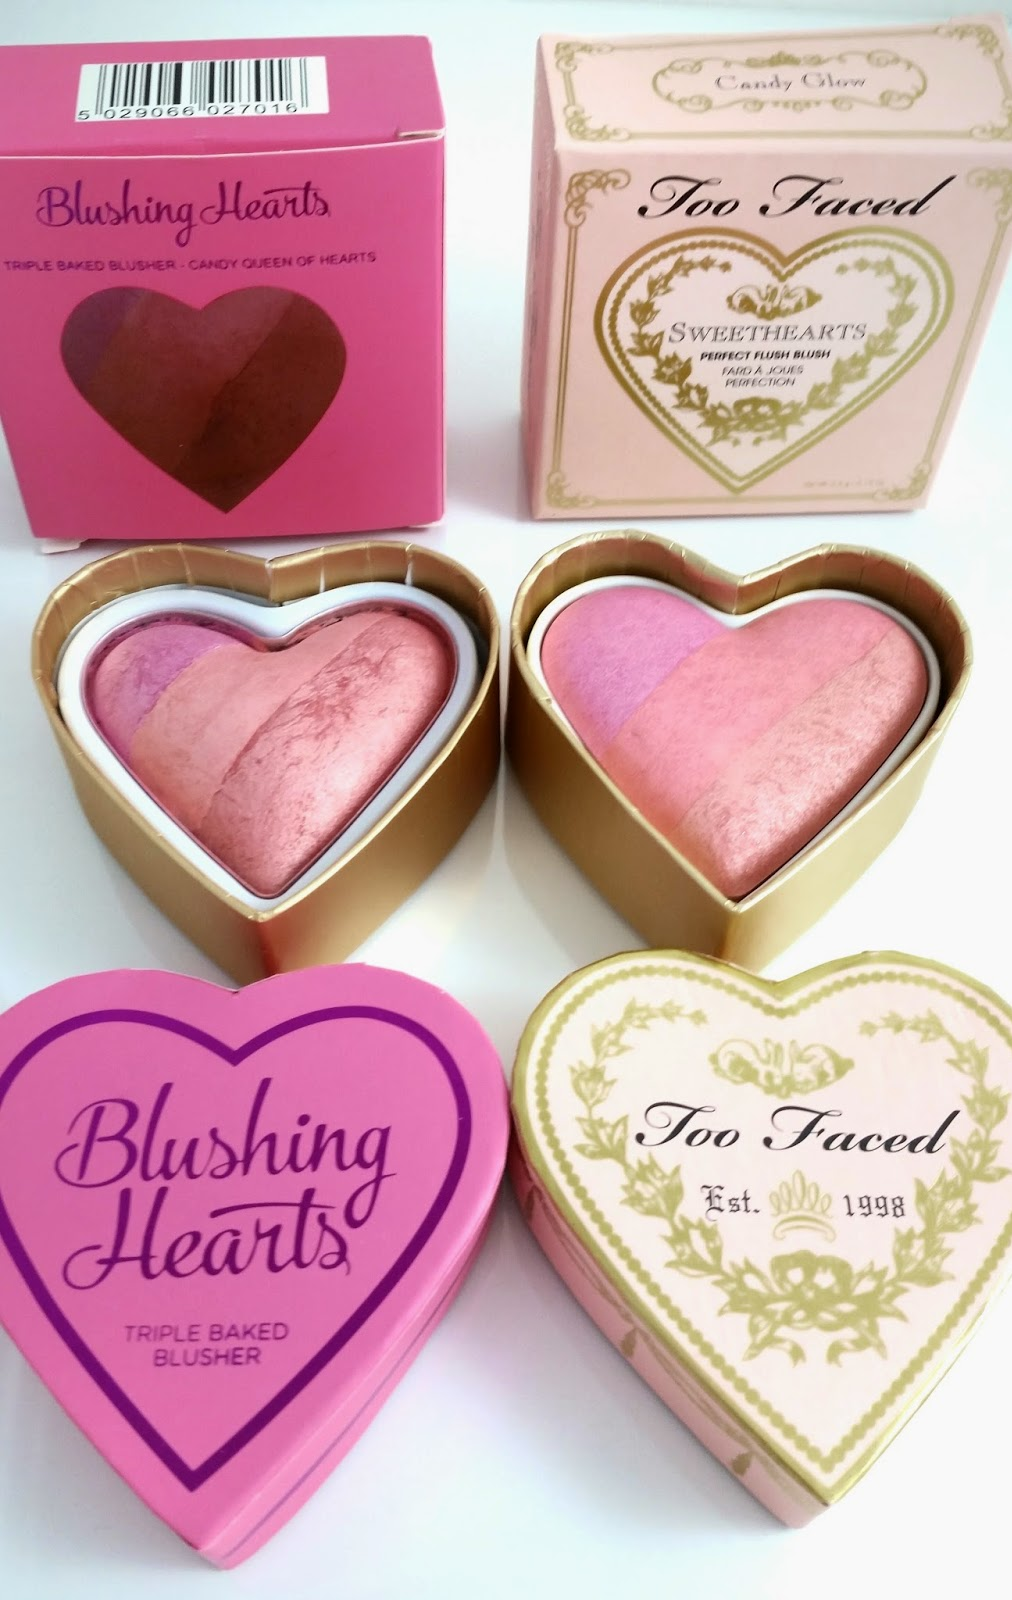 Too Faced Sweethearts Blush Dupe- Makeup Revolution